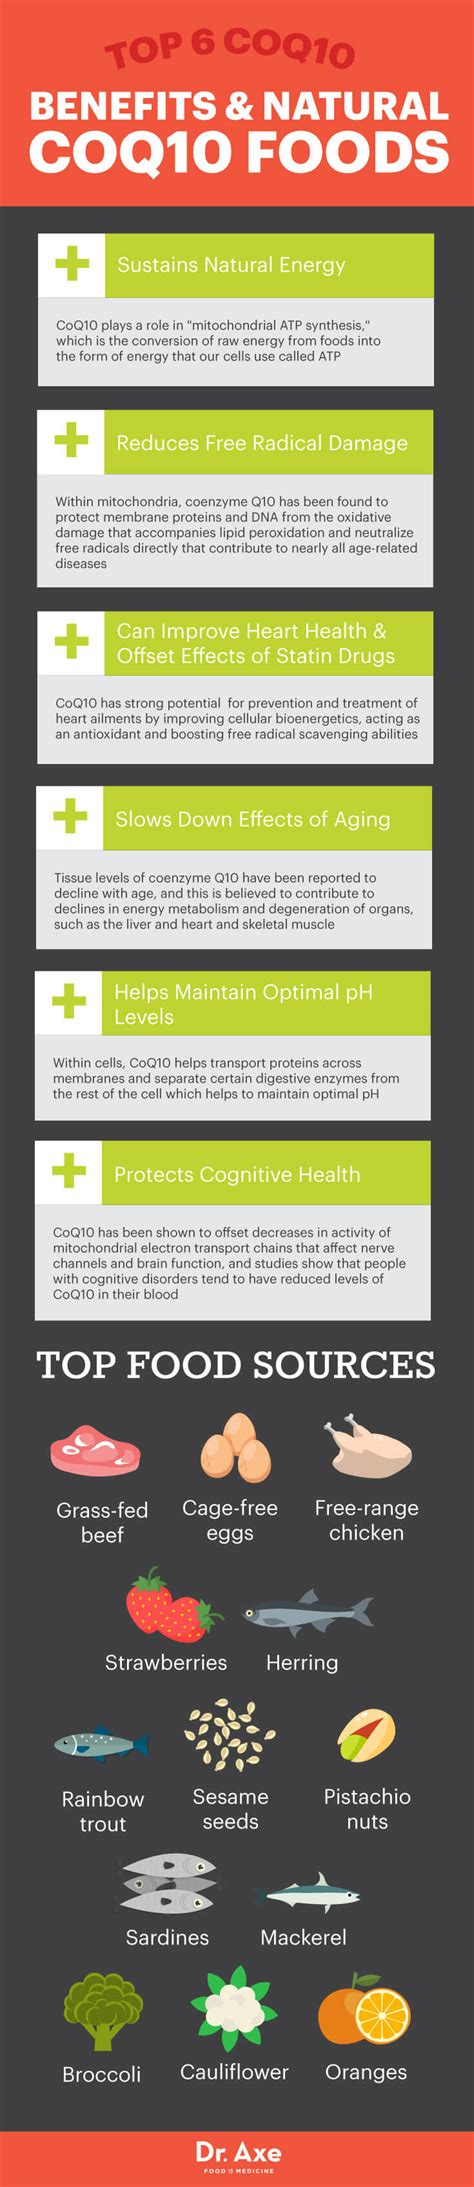 supplement q10 benefits all about coq10 benefits coq10 foods coq10 side effects